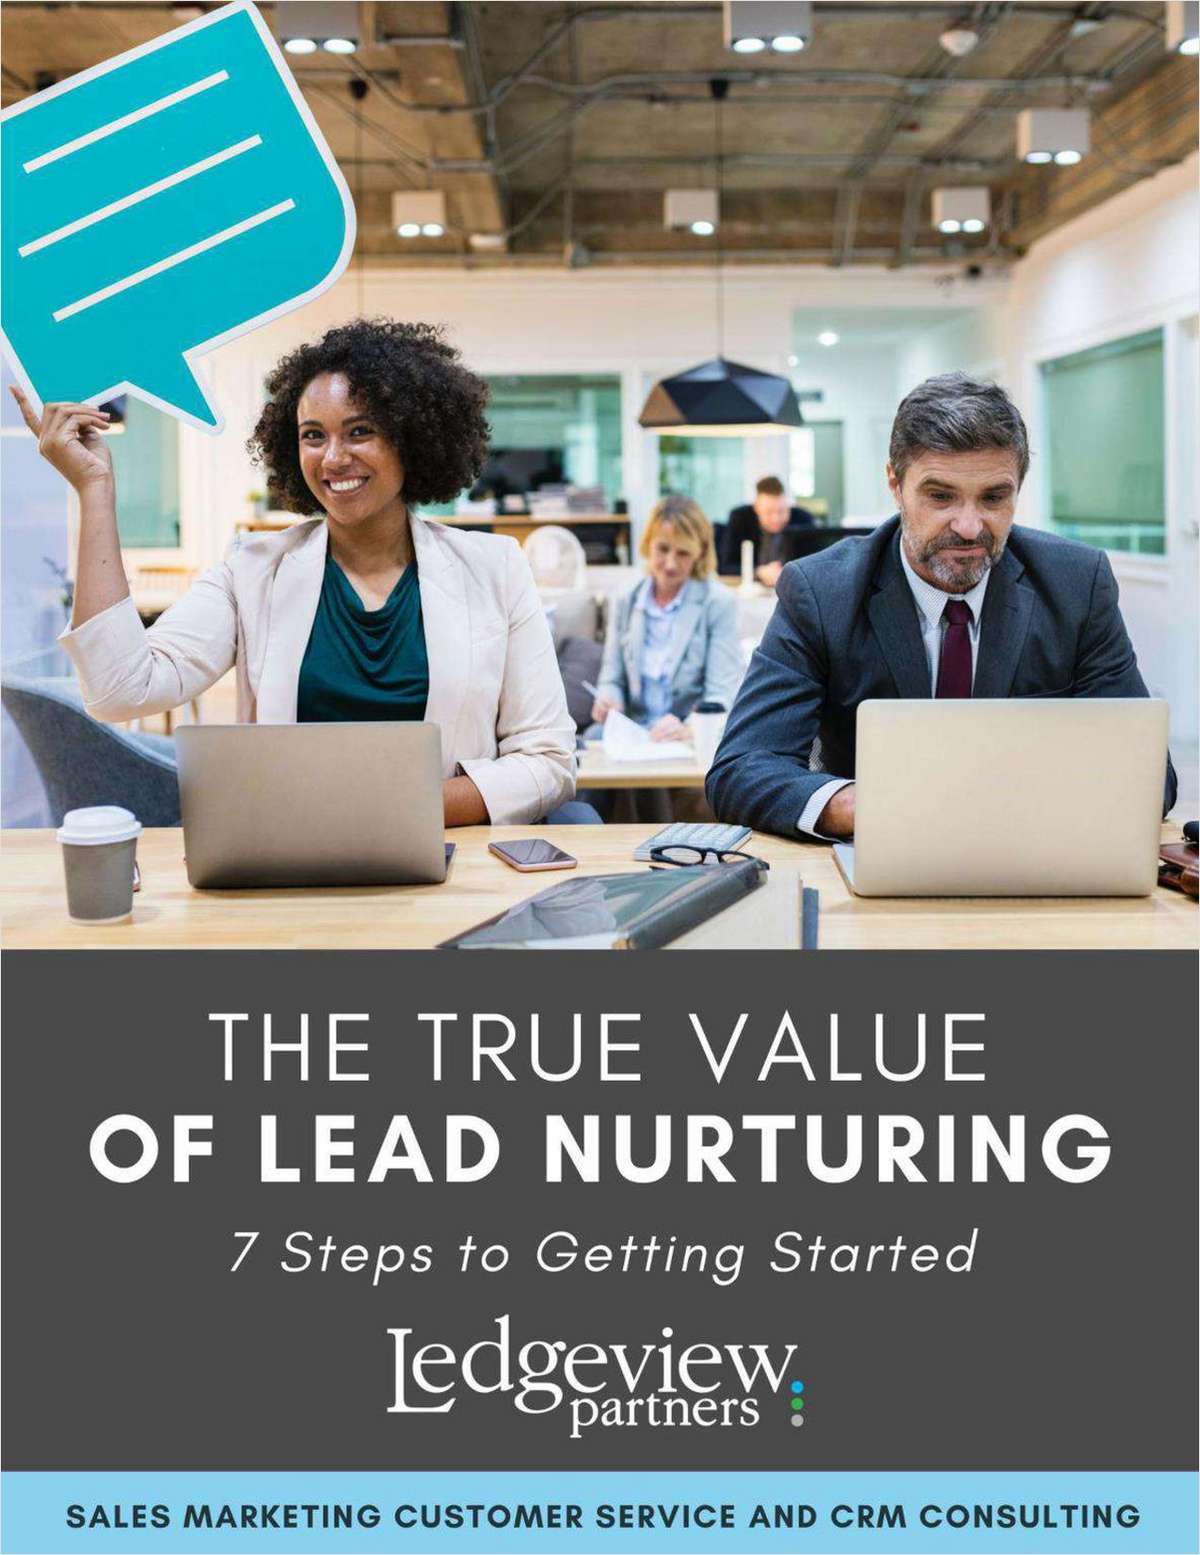 7 Steps to Getting Started with Lead Nurturing